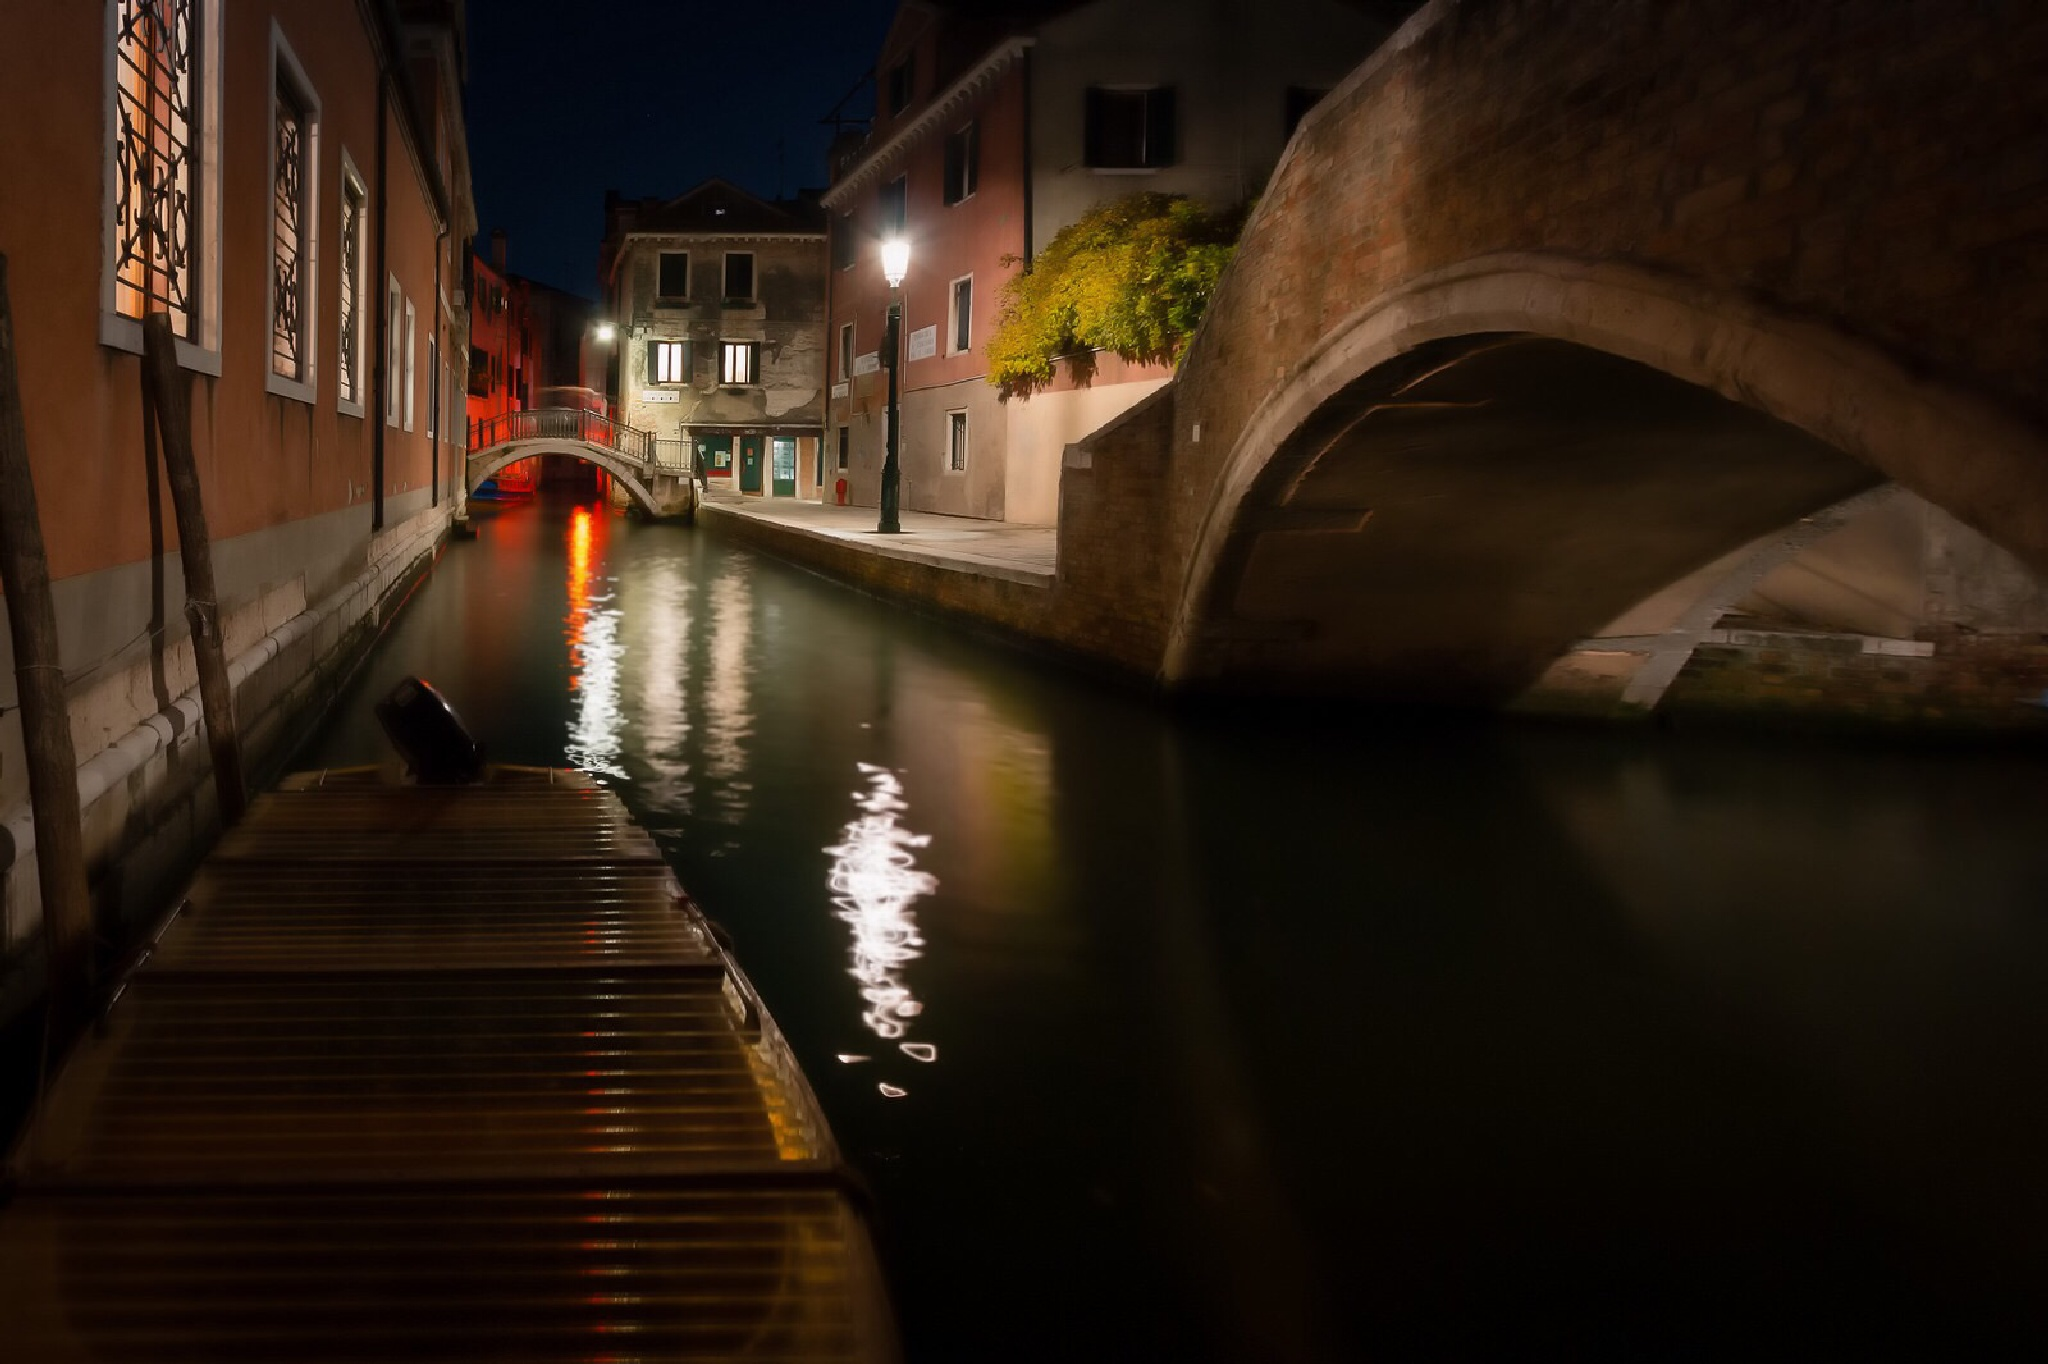 Canal by night  by Rob Menting